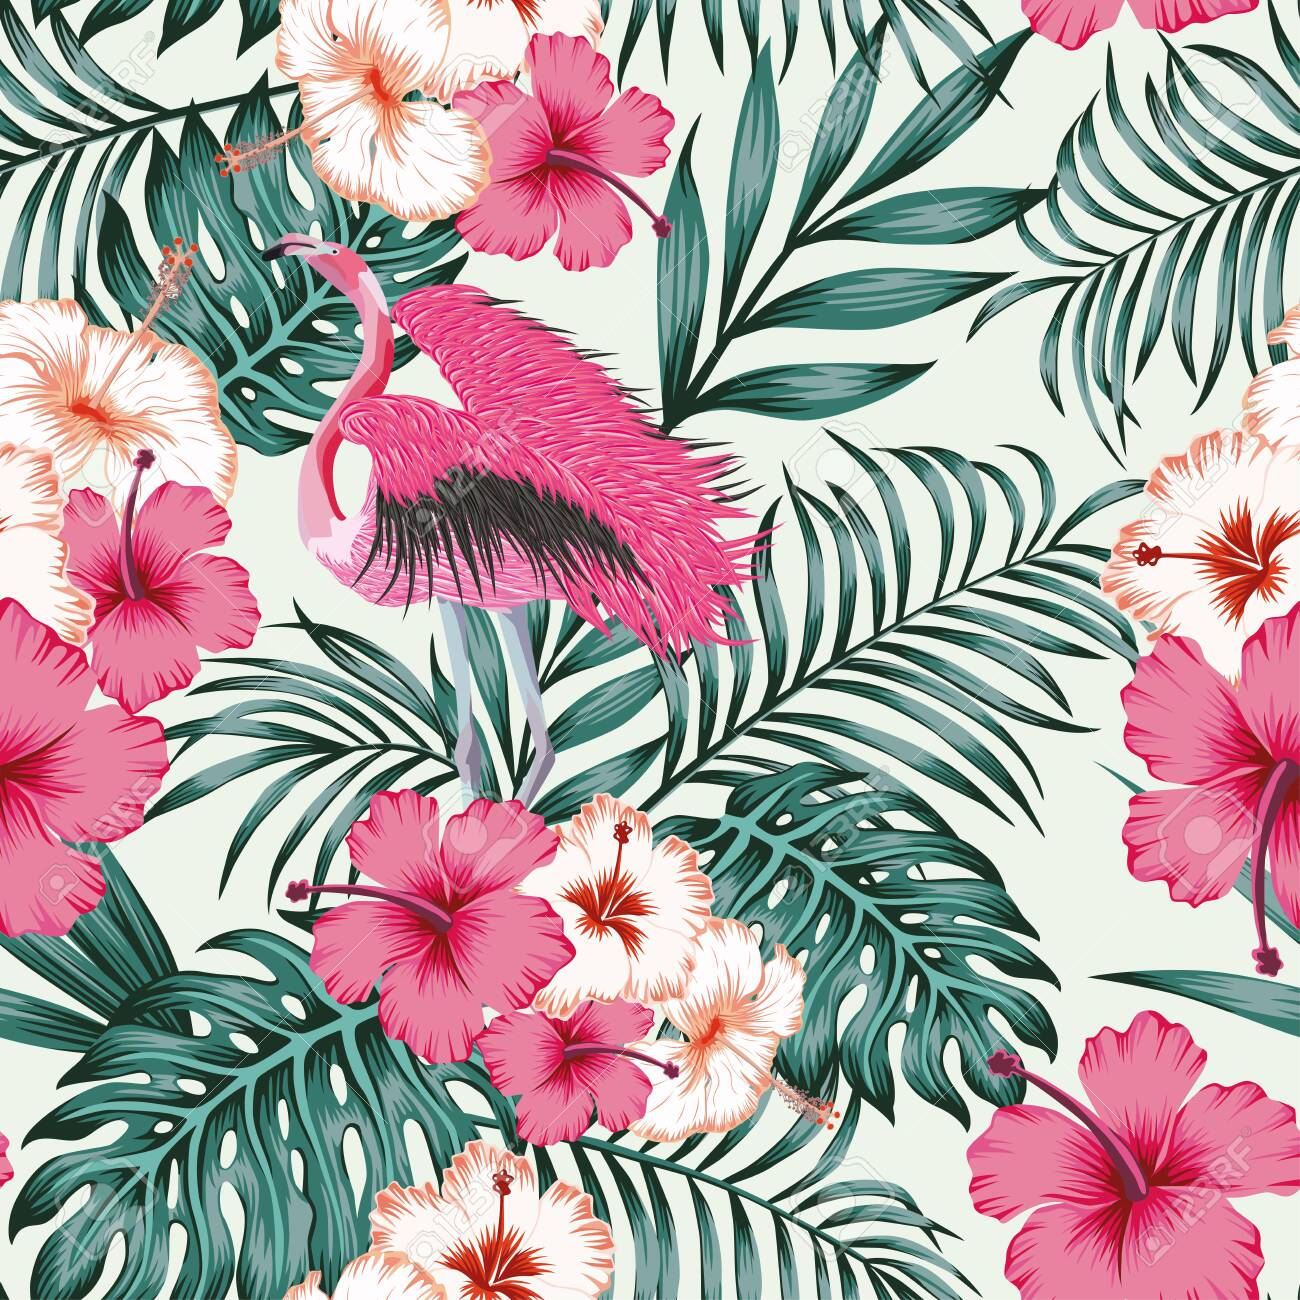 Exotic beautiful bird pink flamingo spread wings in jungle of hibiscus flowers and monstera, palm leaves. Seamless tropical pattern on white background. Beach design wallpaper. - 145276925